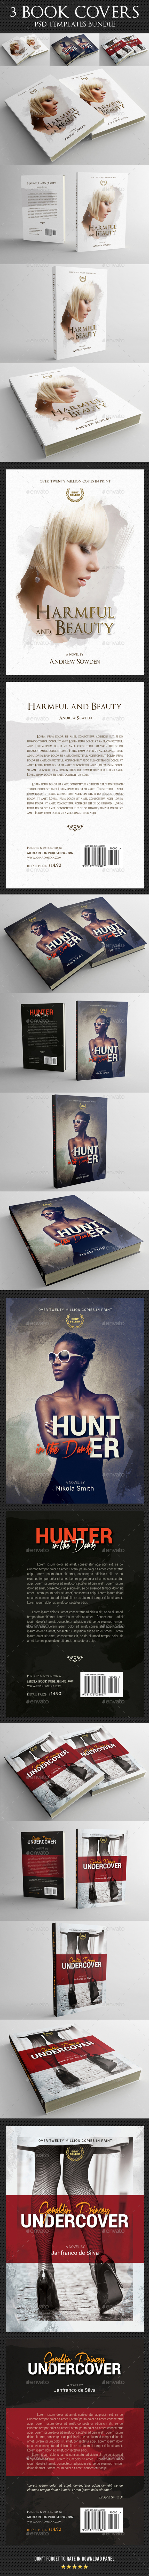 3 in 1 Book Cover Template Bundle 13 - Miscellaneous Print Templates